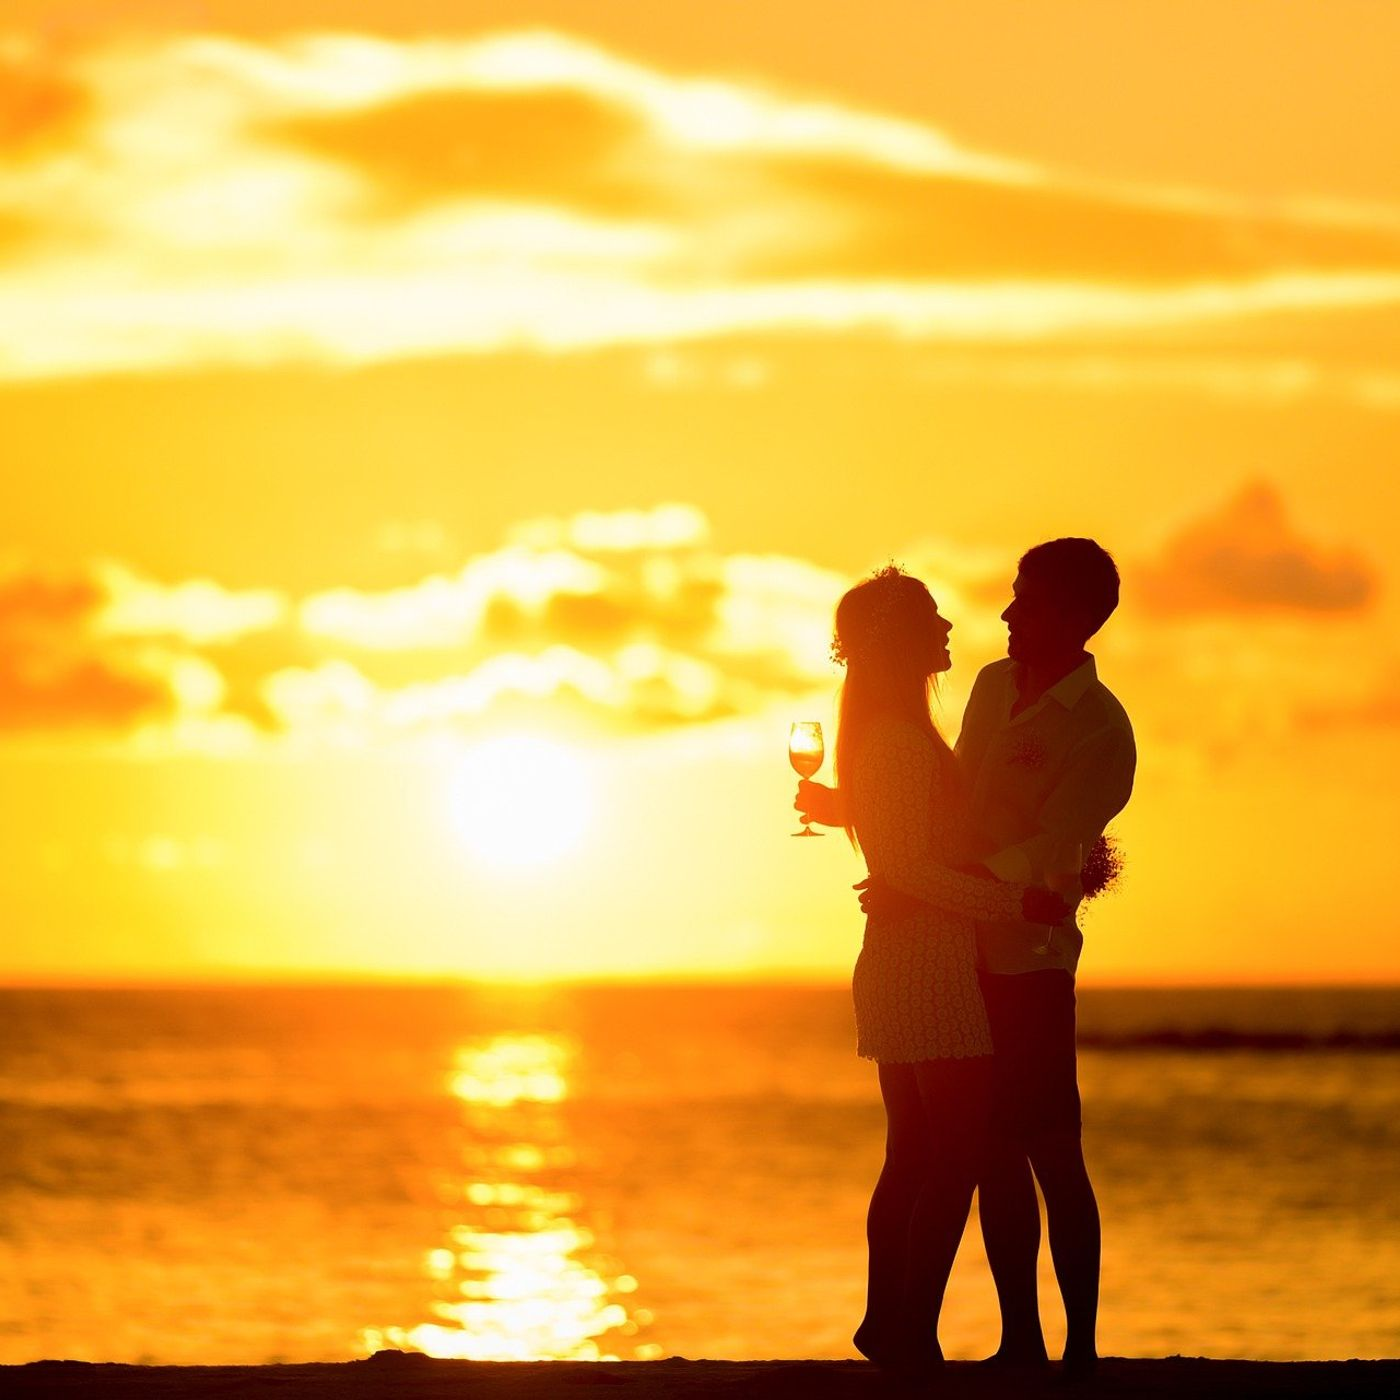 Episode 226 In a Relationship, but Isolated from Family and Friends